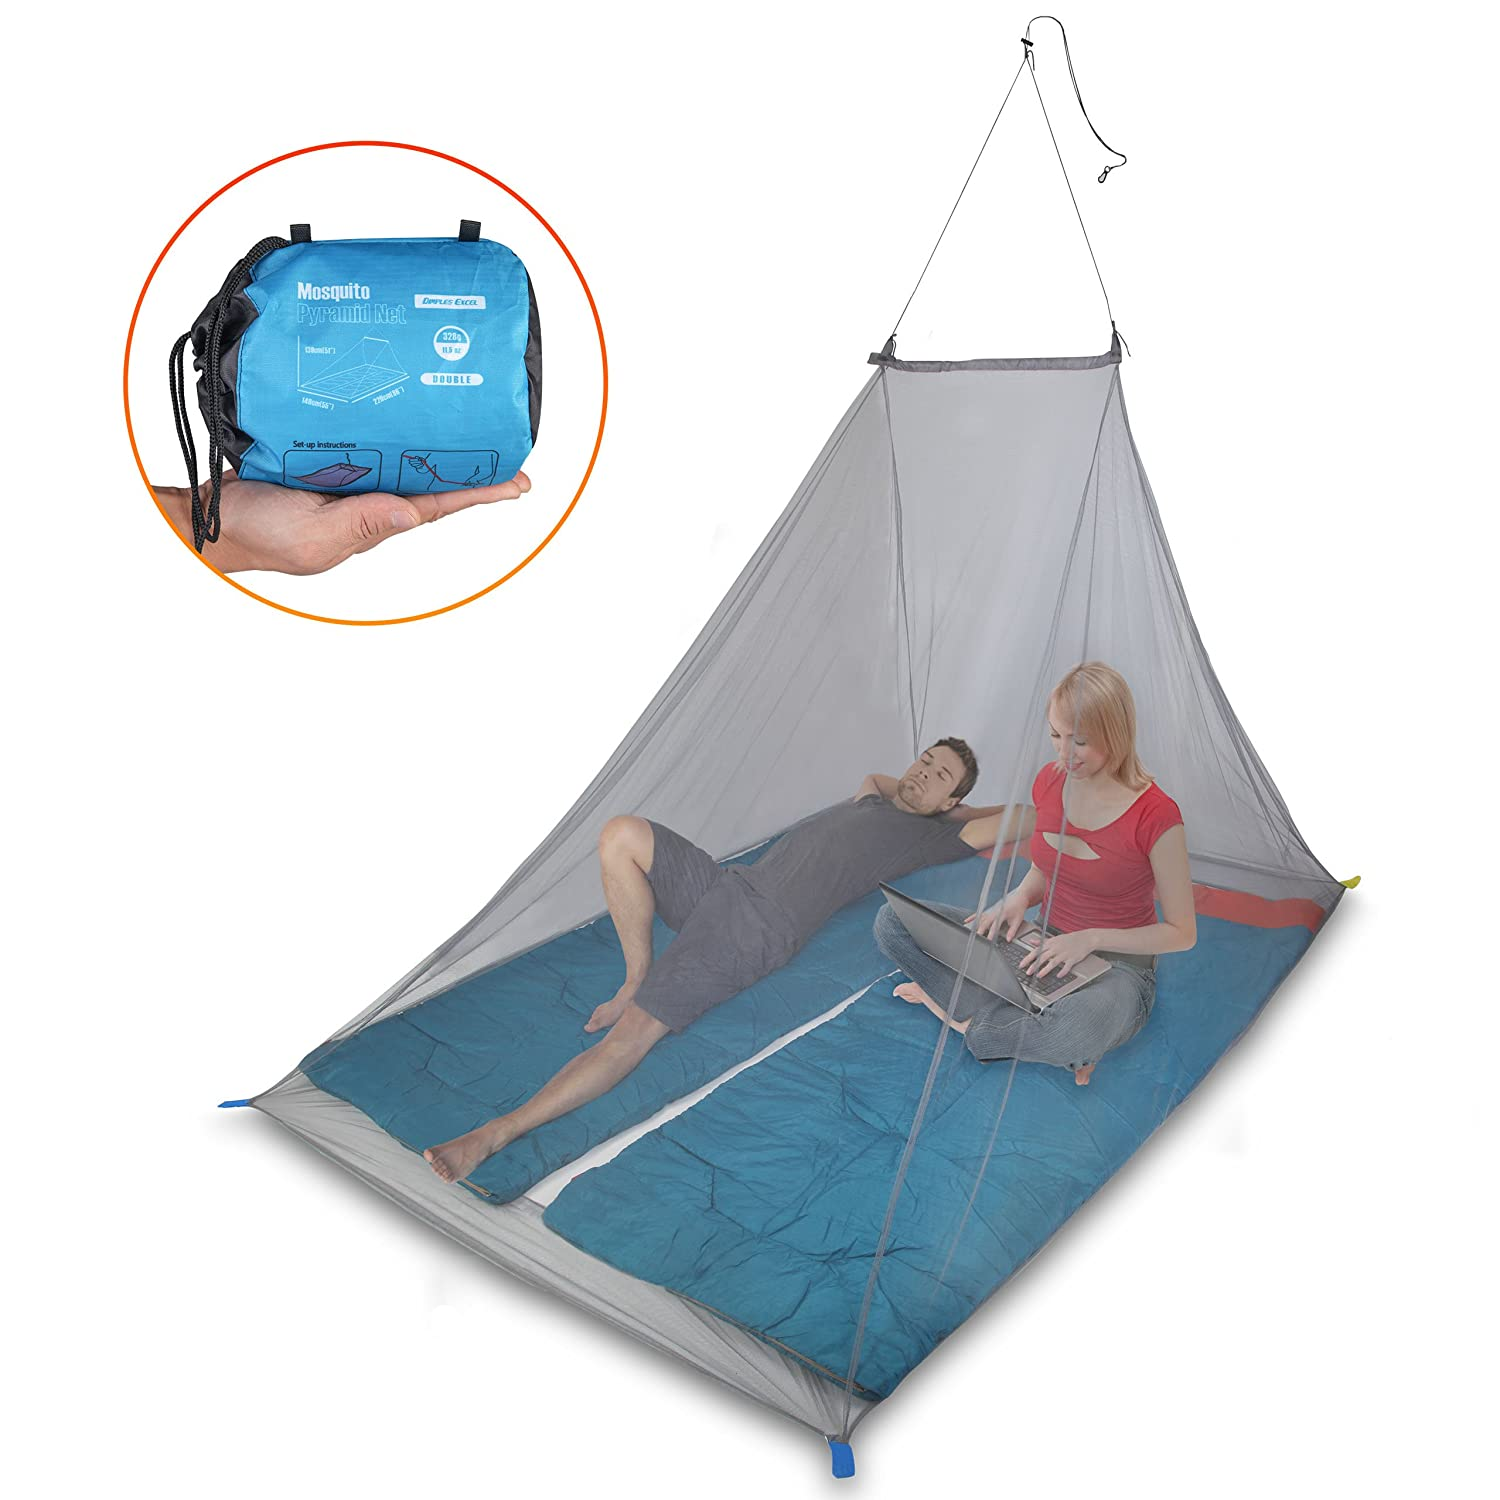 Dimples Excel Mosquito Net for Single Camping Bed - 250 Holes per Square Inch, Compact and Lightweight Dimples Excel Ltd